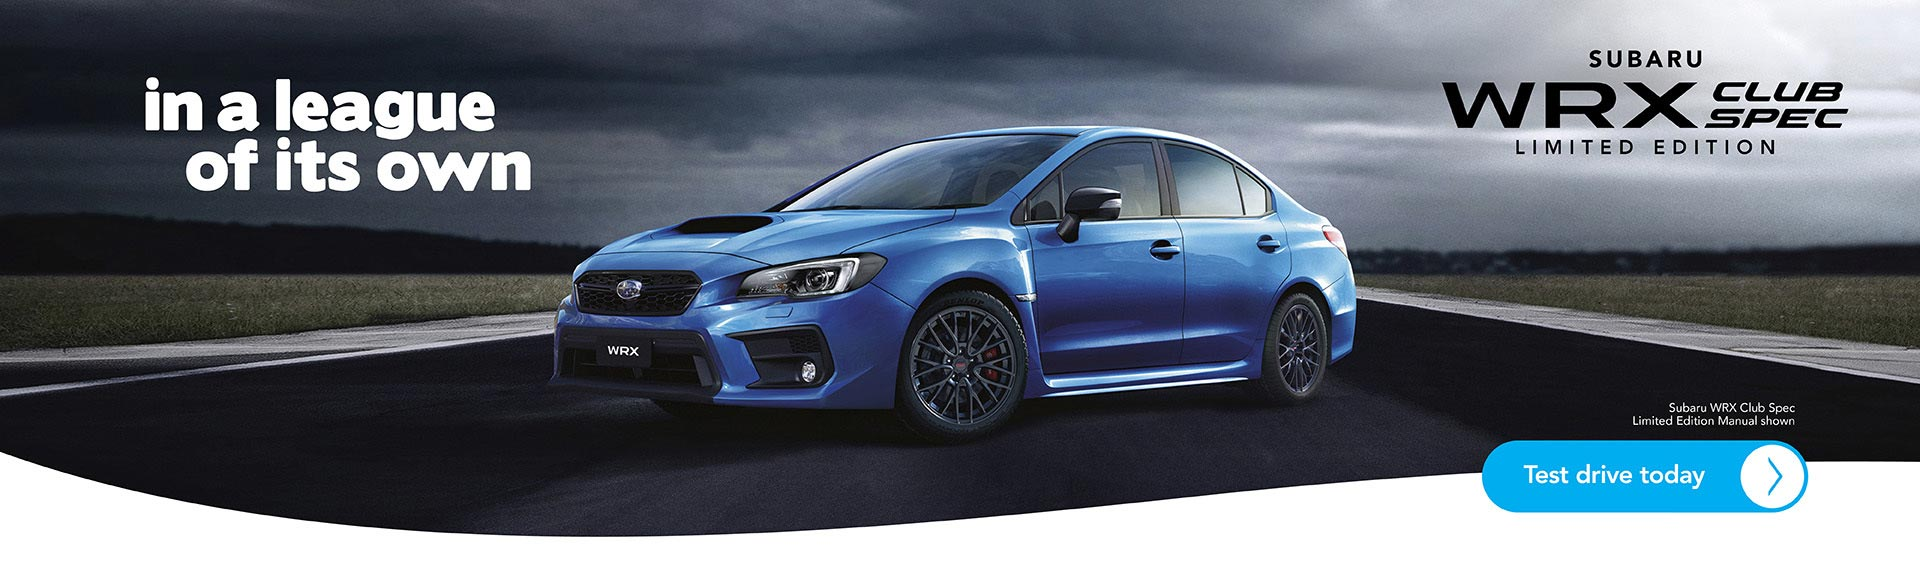 Subaru WRX Club Spec Edition